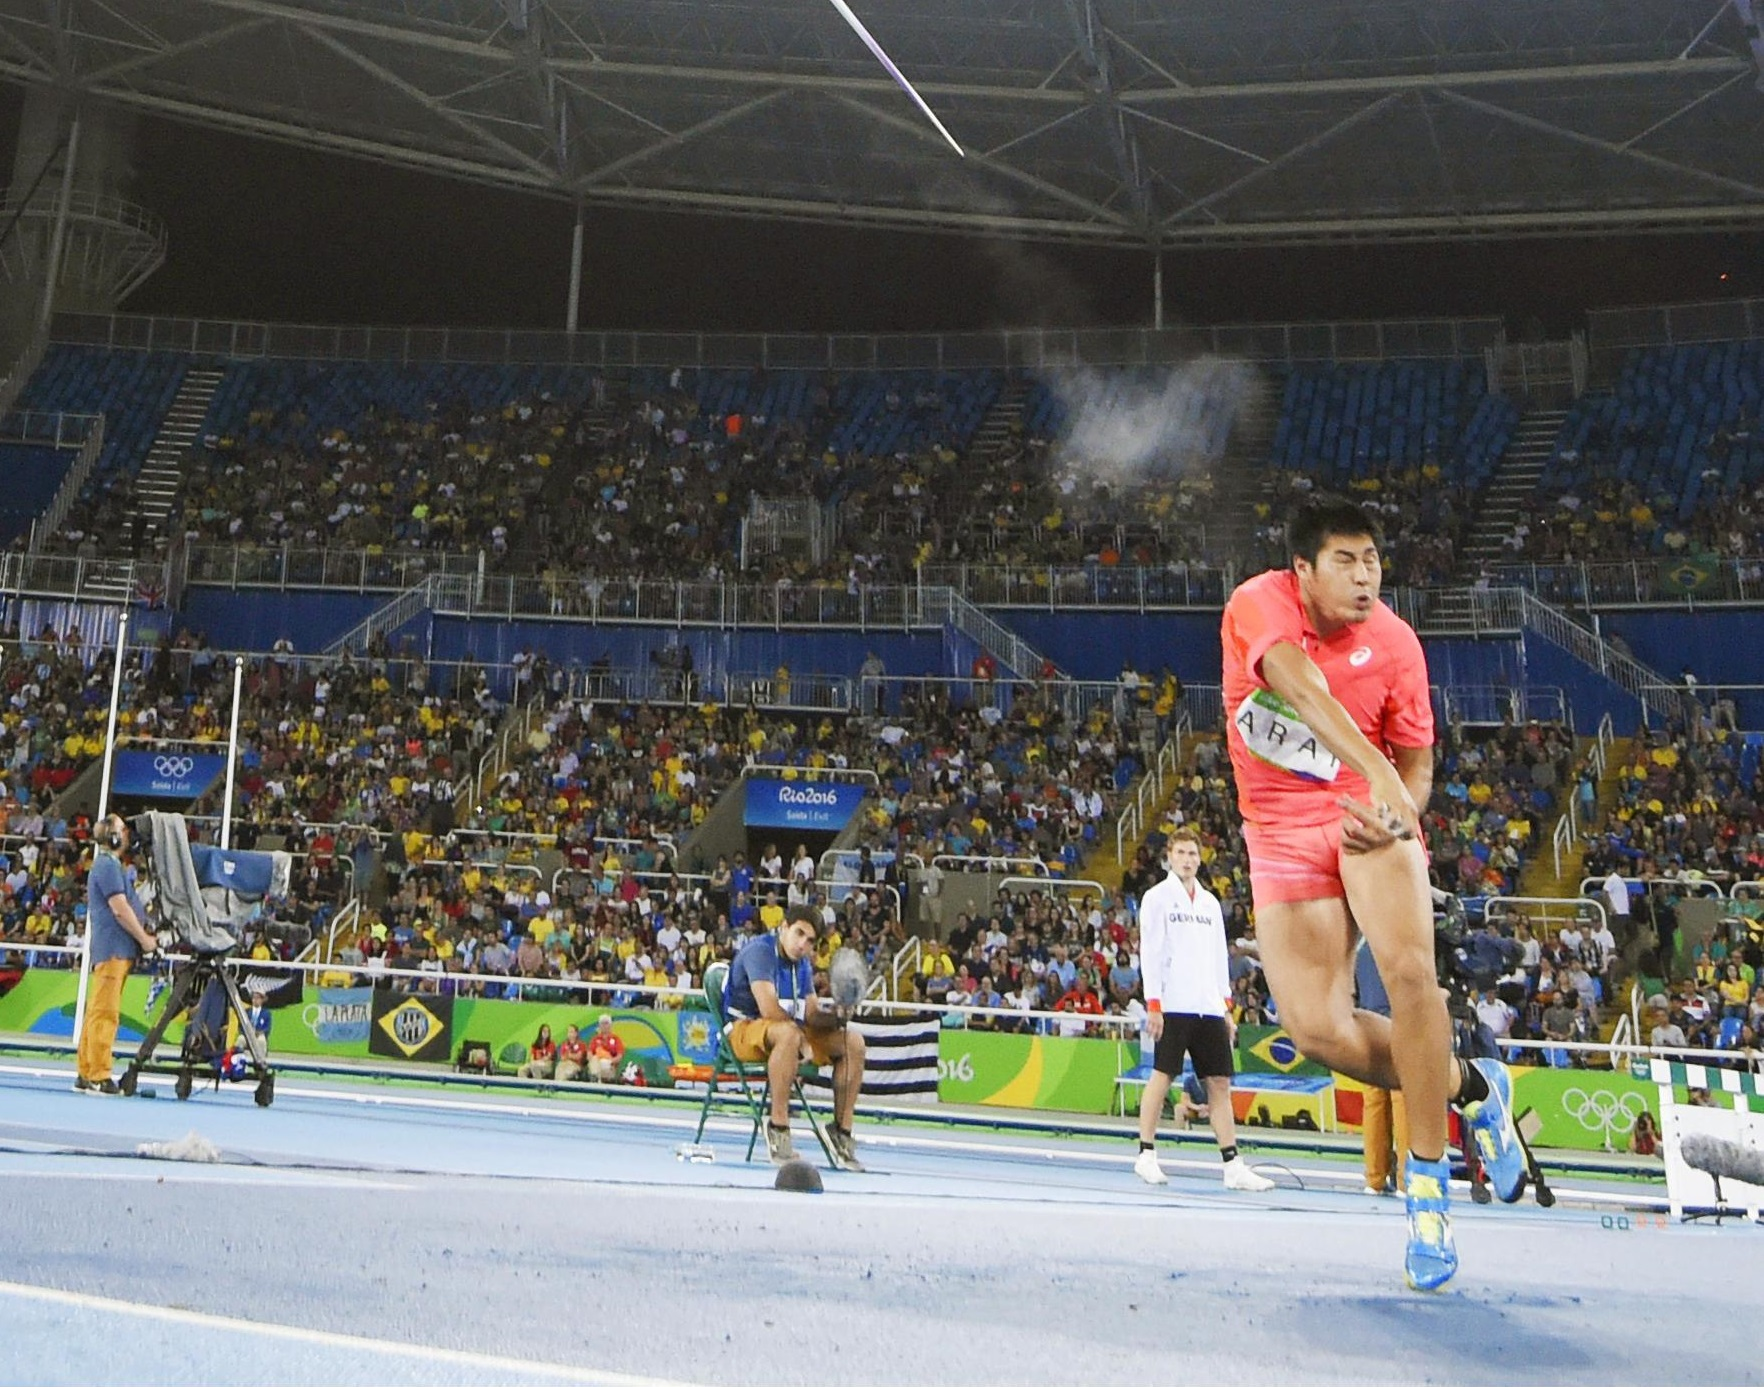 Ryohei Arai makes his second attempt during the men's javelin throw final on Saturday at the 2016 Rio Games. | KYODO